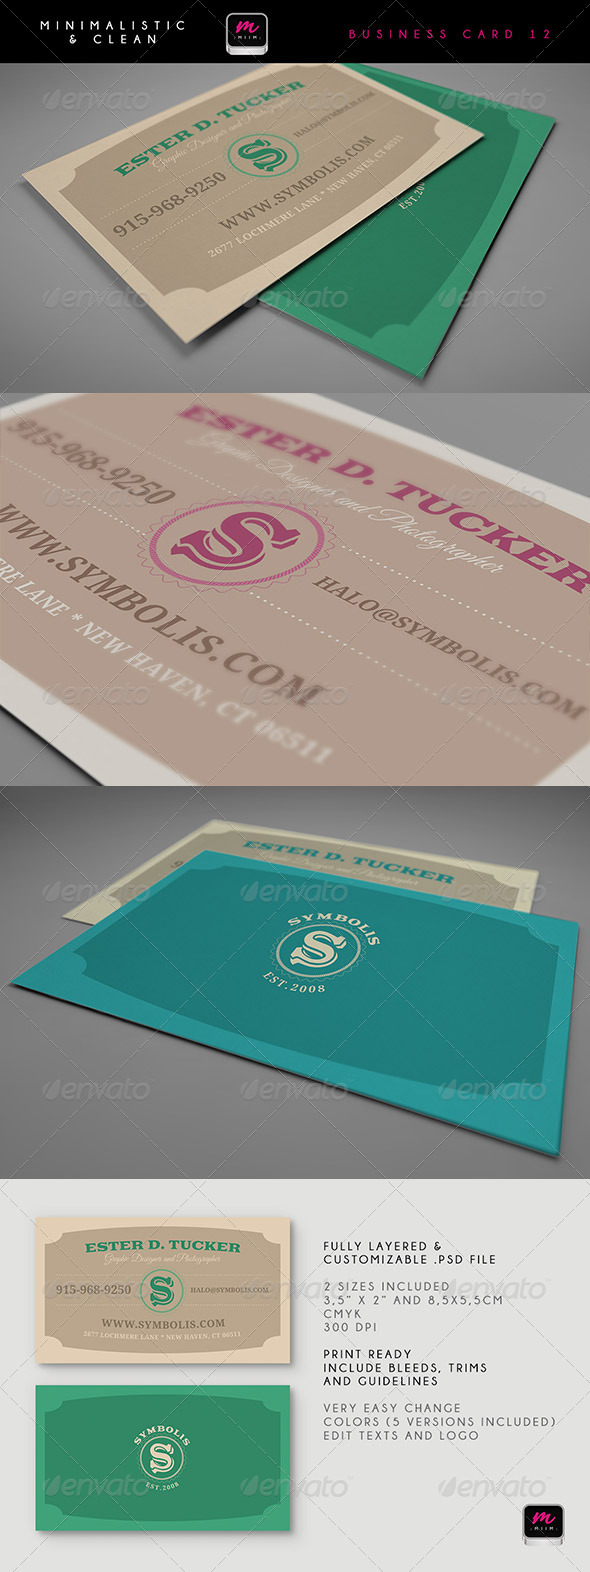 Clean business card template 12 graphicriver for 12 up business card template